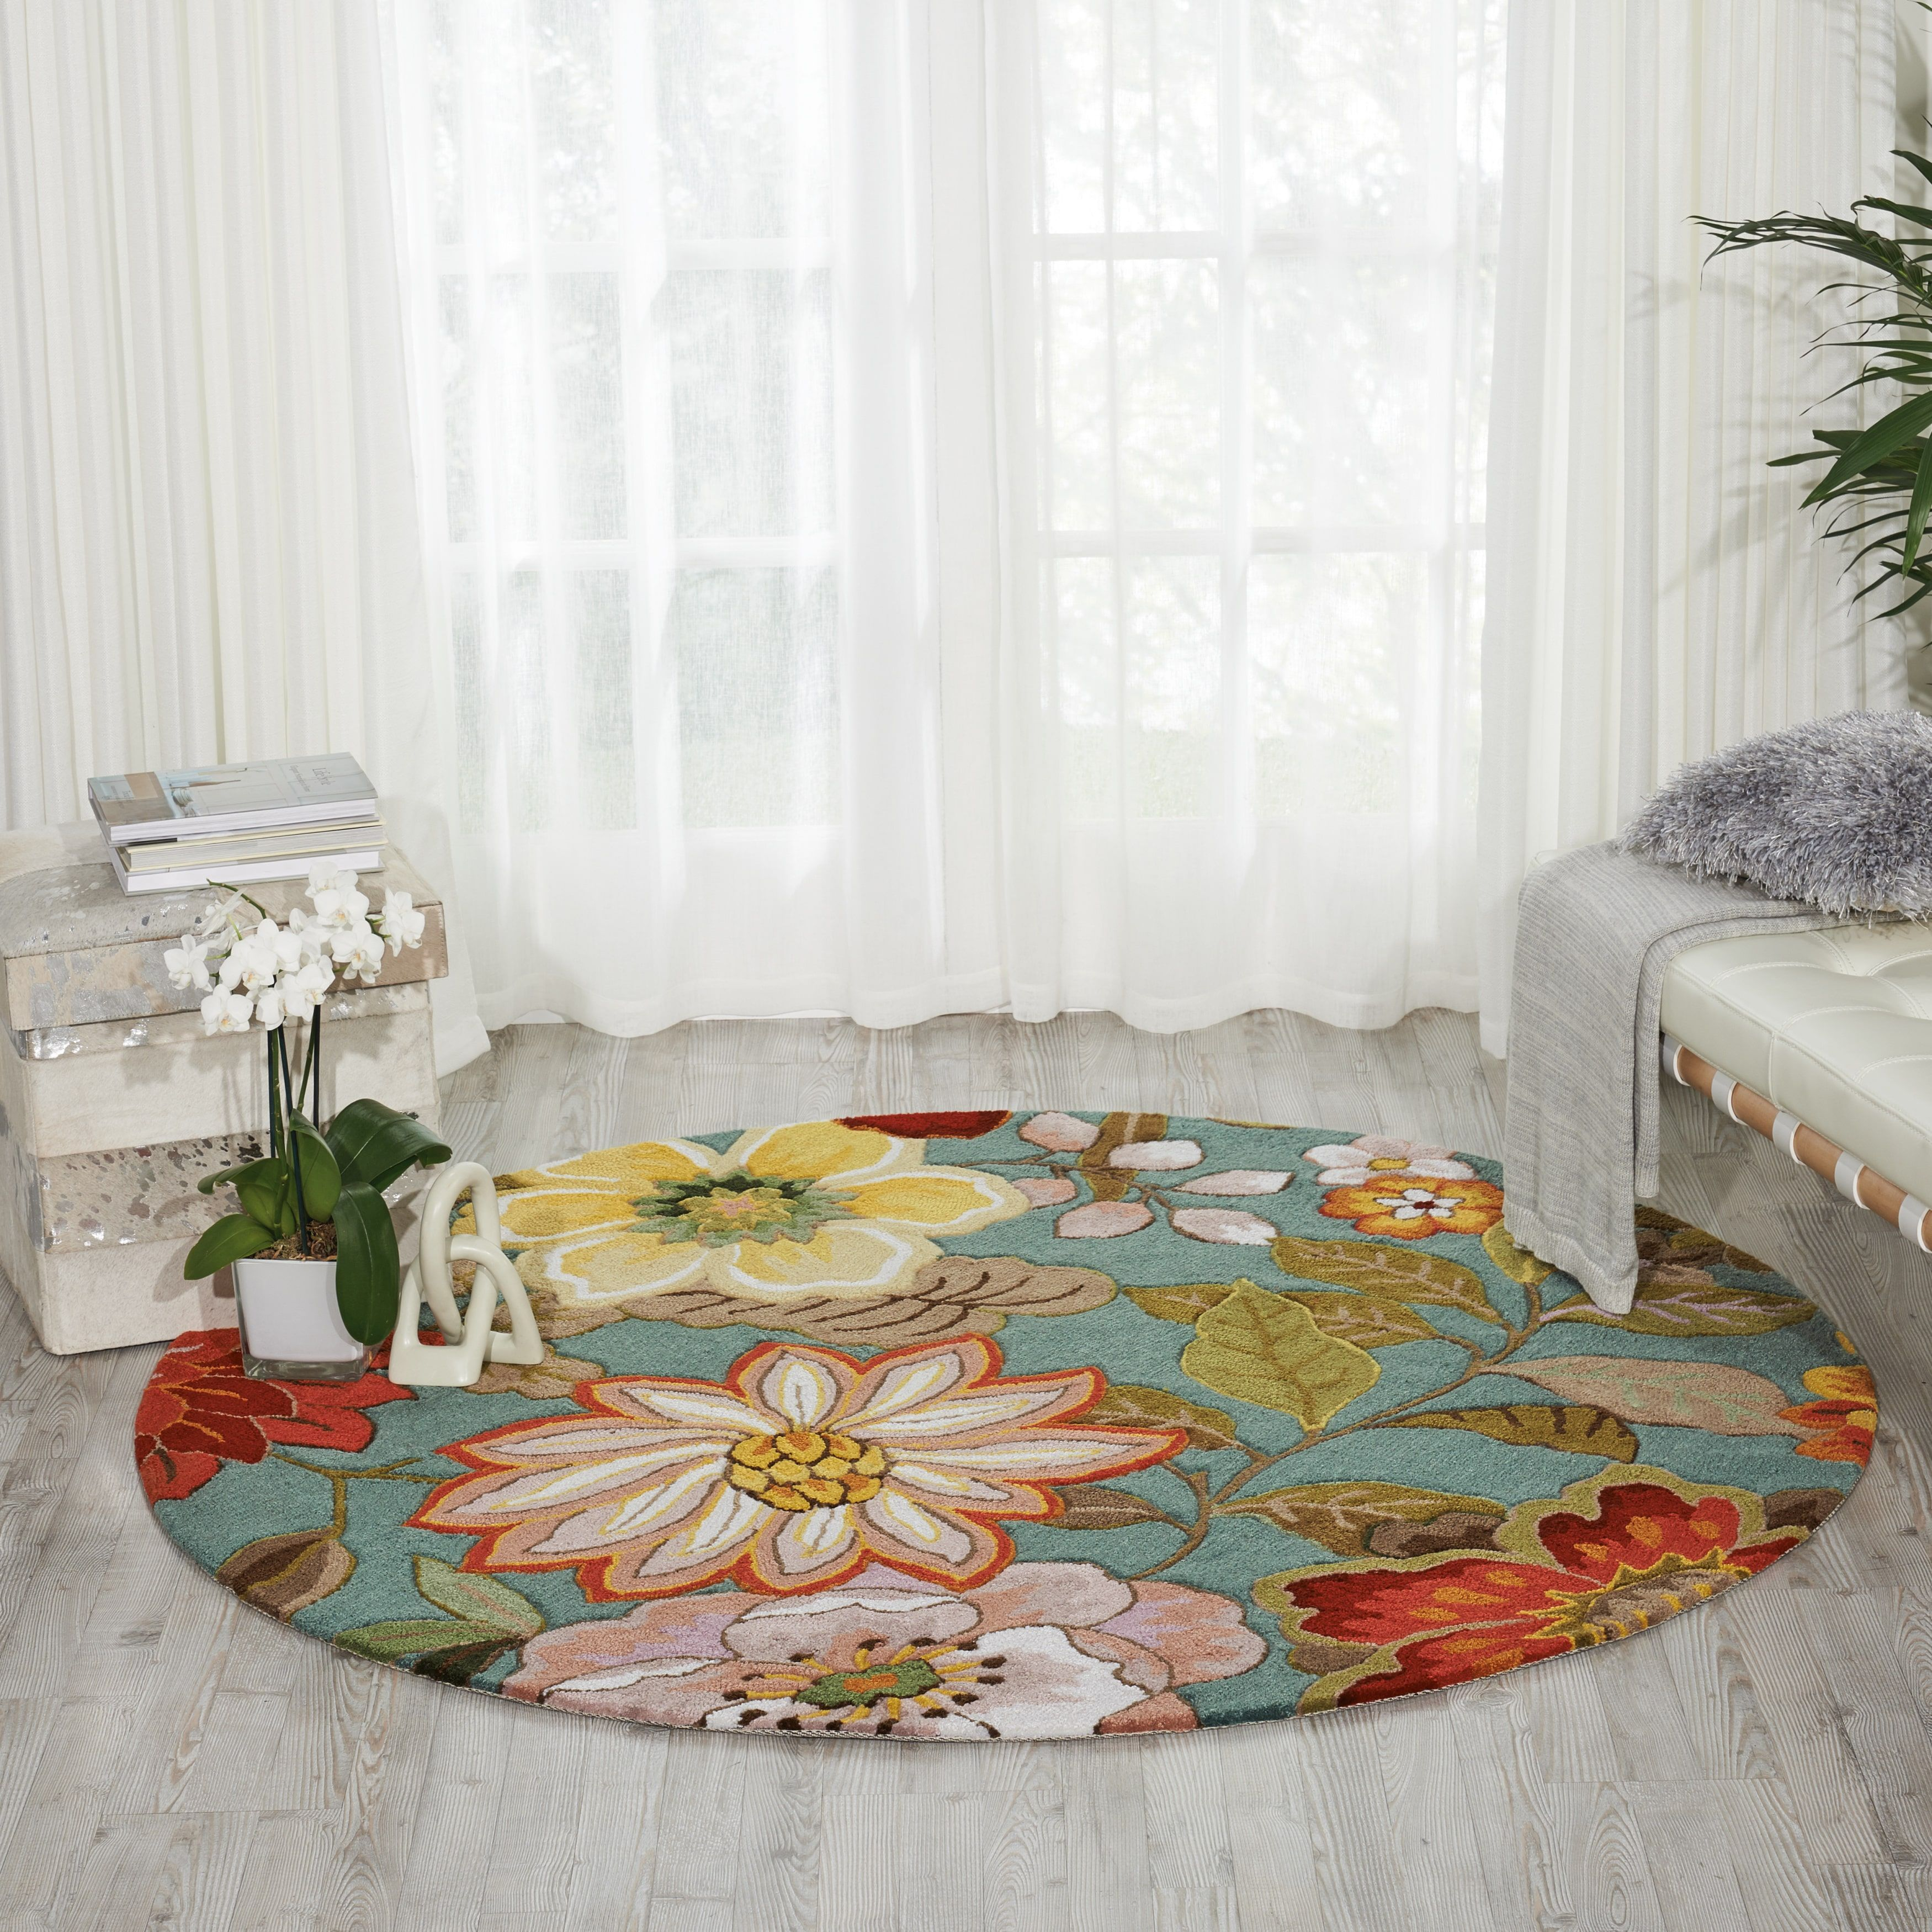 Online Shopping Bedding Furniture Electronics Jewelry Clothing More Cool Rugs Area Rugs Rugs